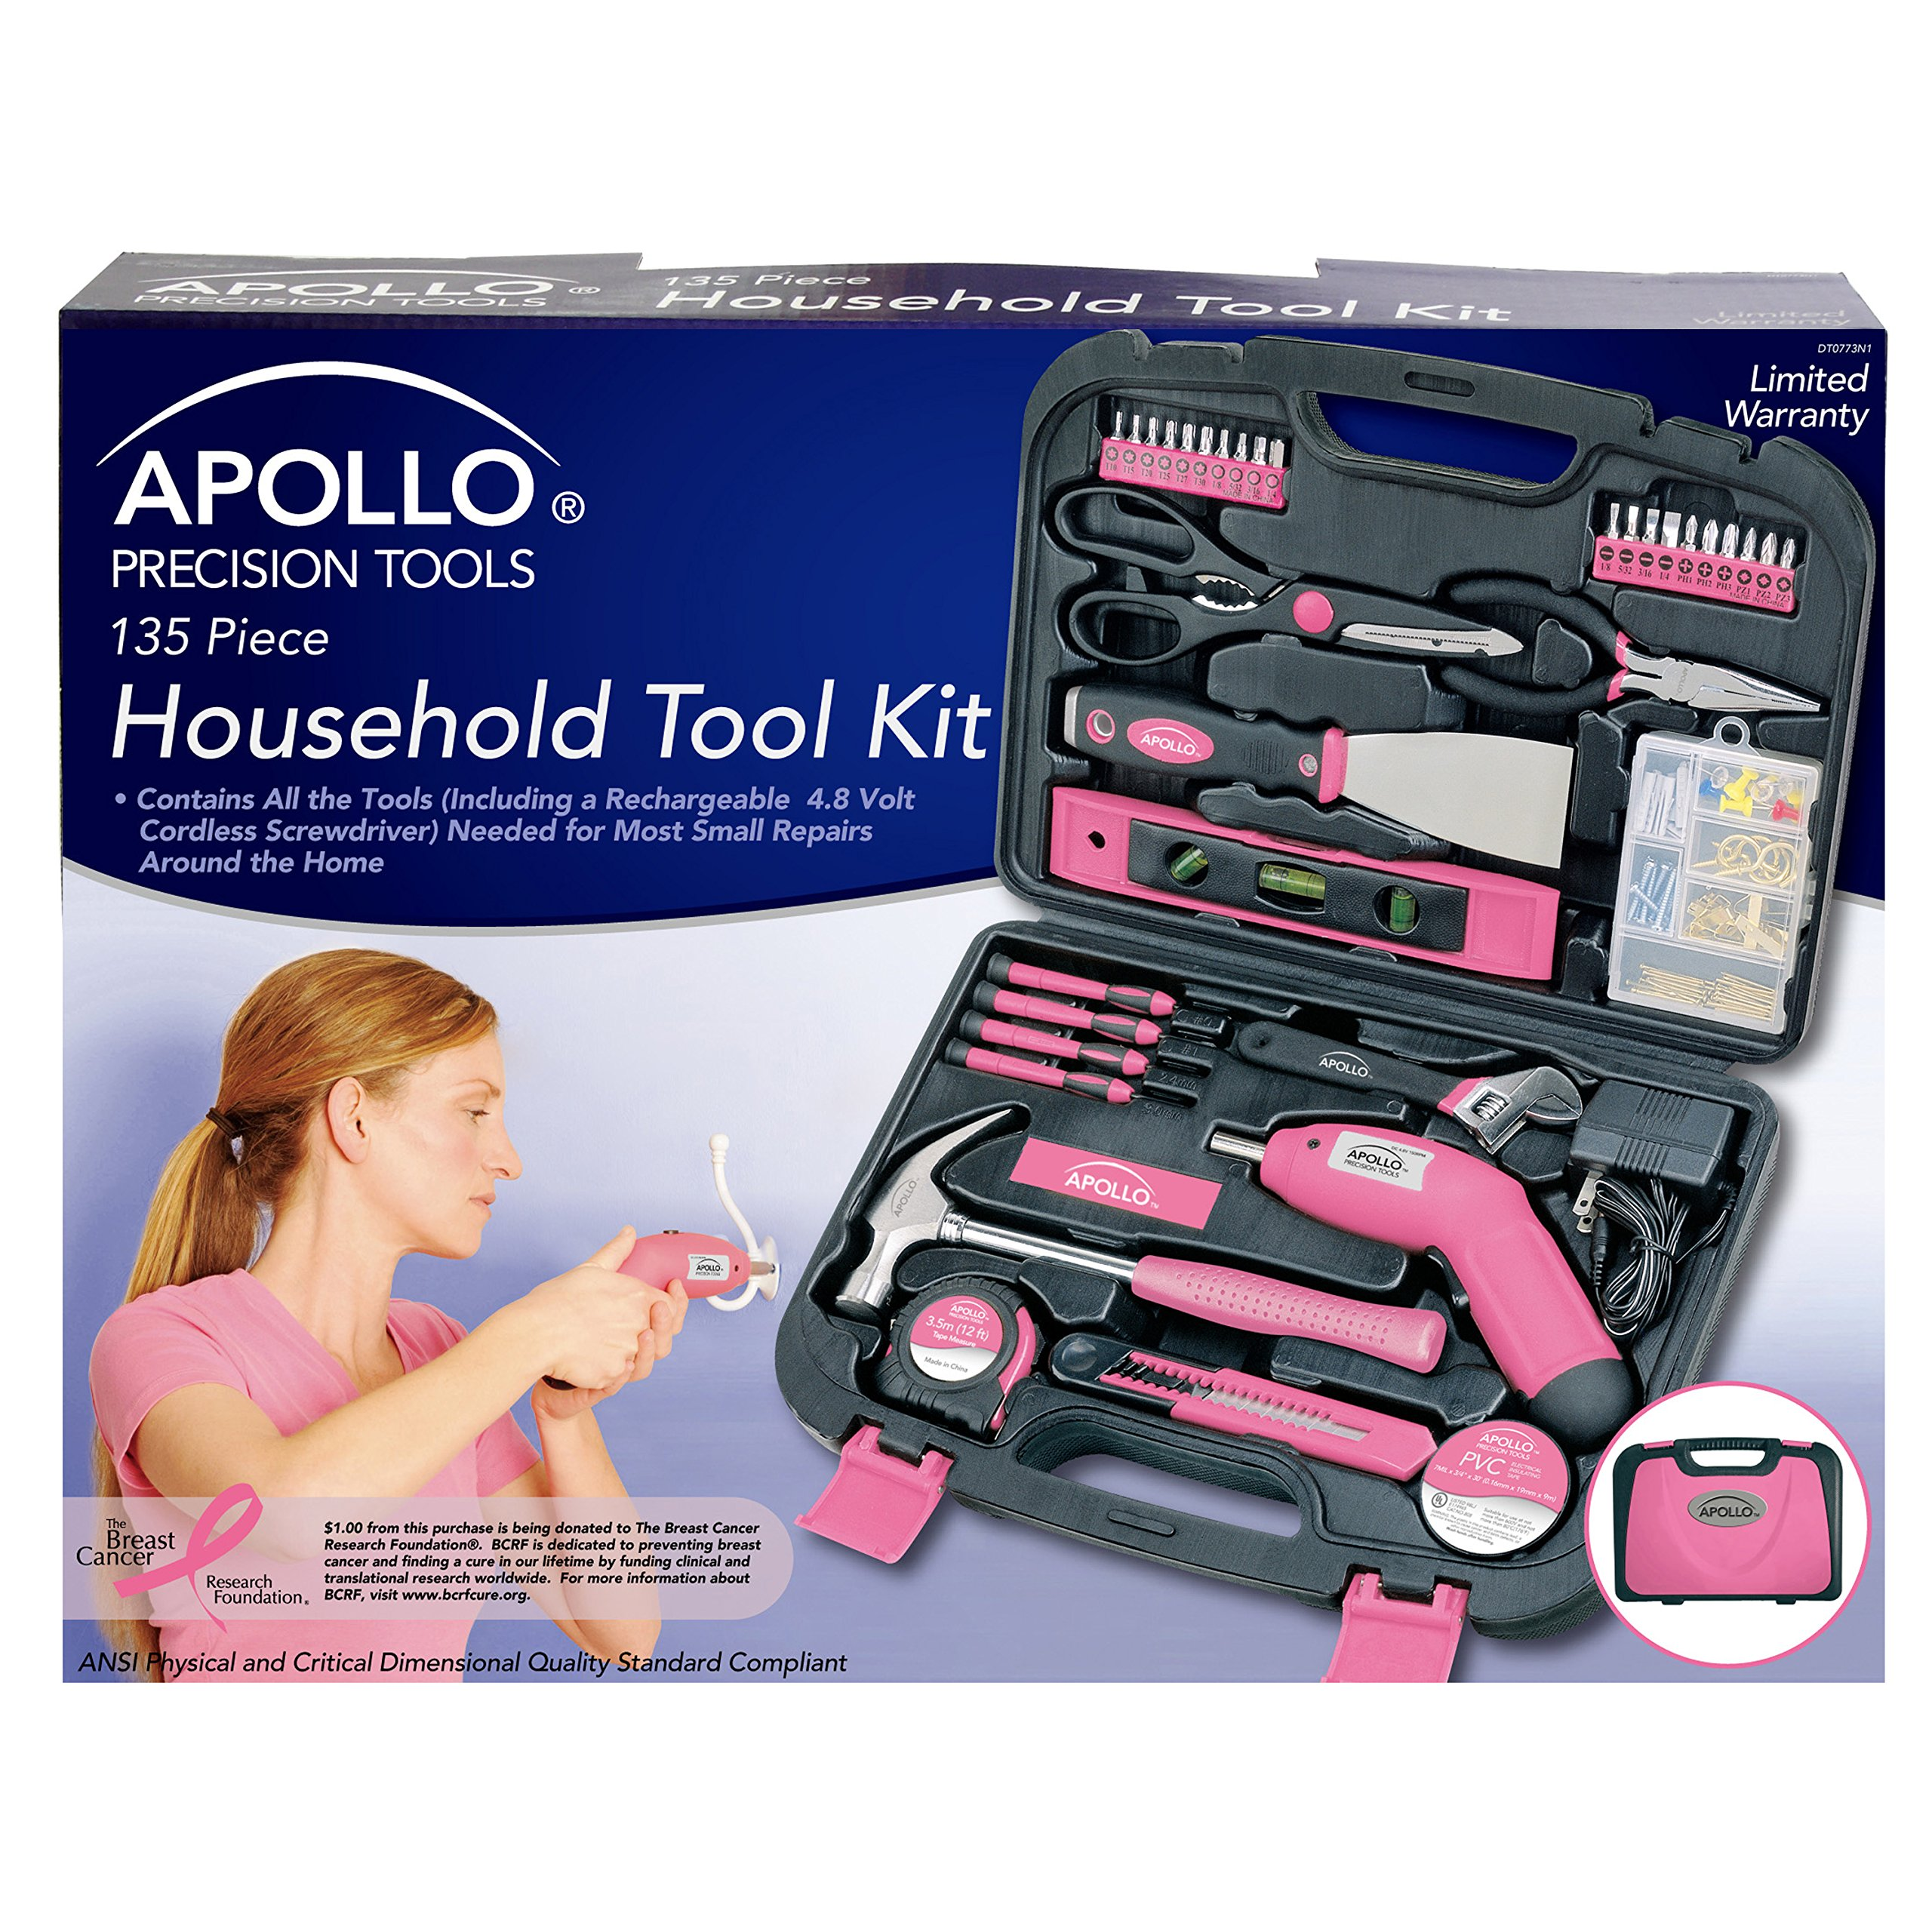 Apollo Tools DT0773N1 135 Piece Complete Household Tool Kit with 4.8 Volt Cordless Screwdriver and Most Useful Hand Tools and DIY accessories Pink Ribbon by Apollo Tools (Image #2)